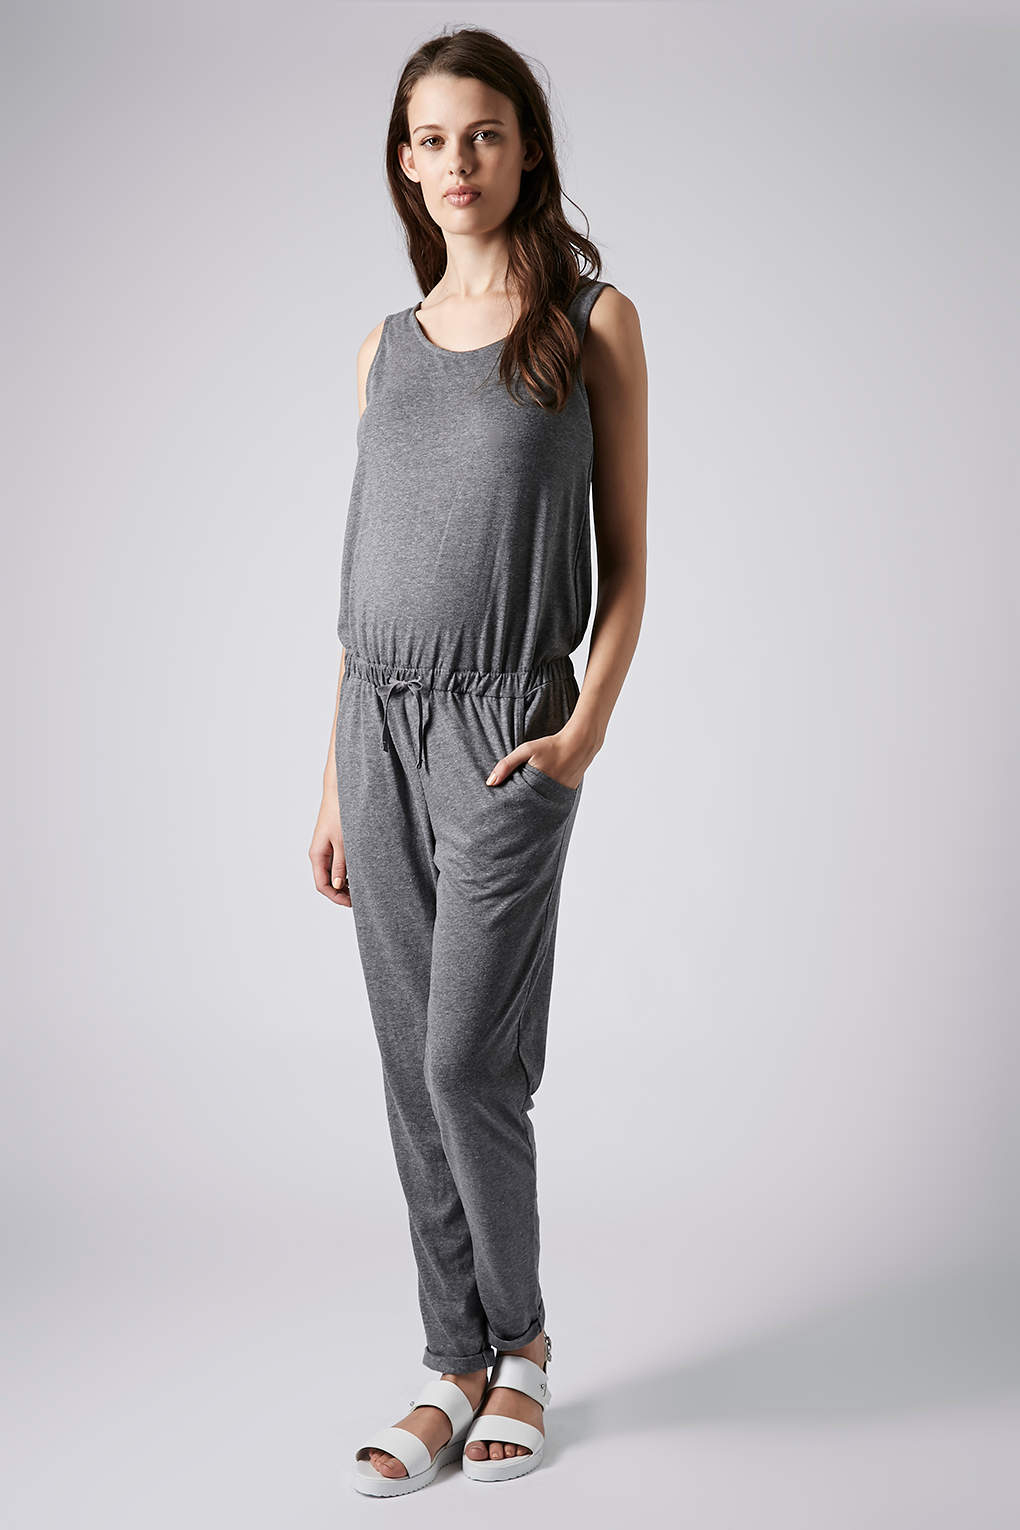 Topshop Maternity Jersey Jumpsuit in Gray